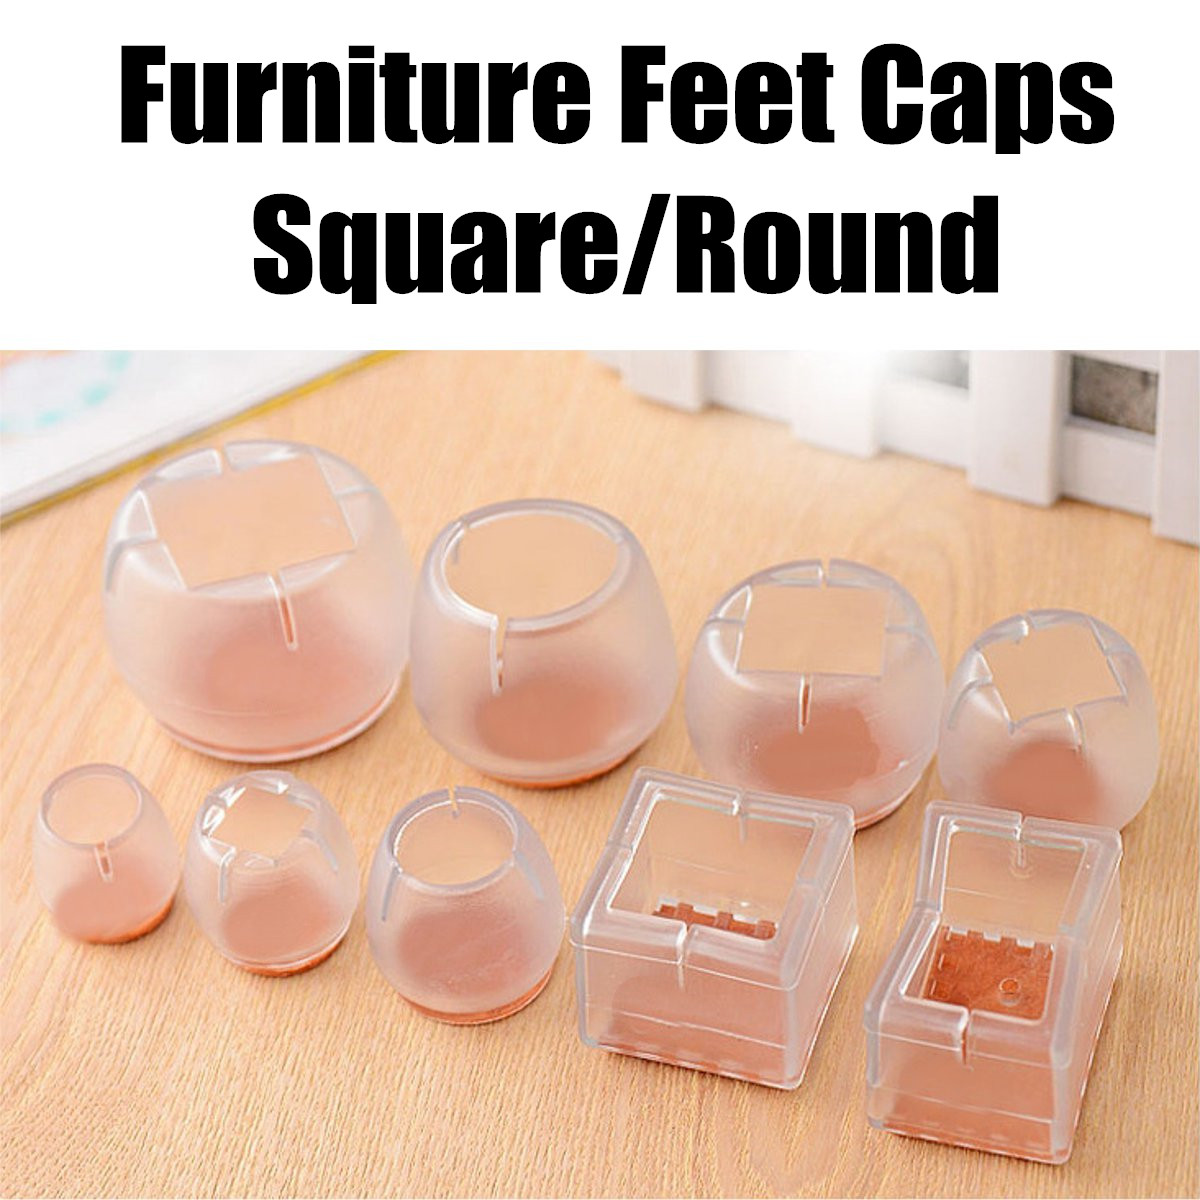 Silicone Square Round Chair Leg Foot Protect Pad Furniture Table Base Cap Cover Antiskid Floor Protection Furniture Feet Parts